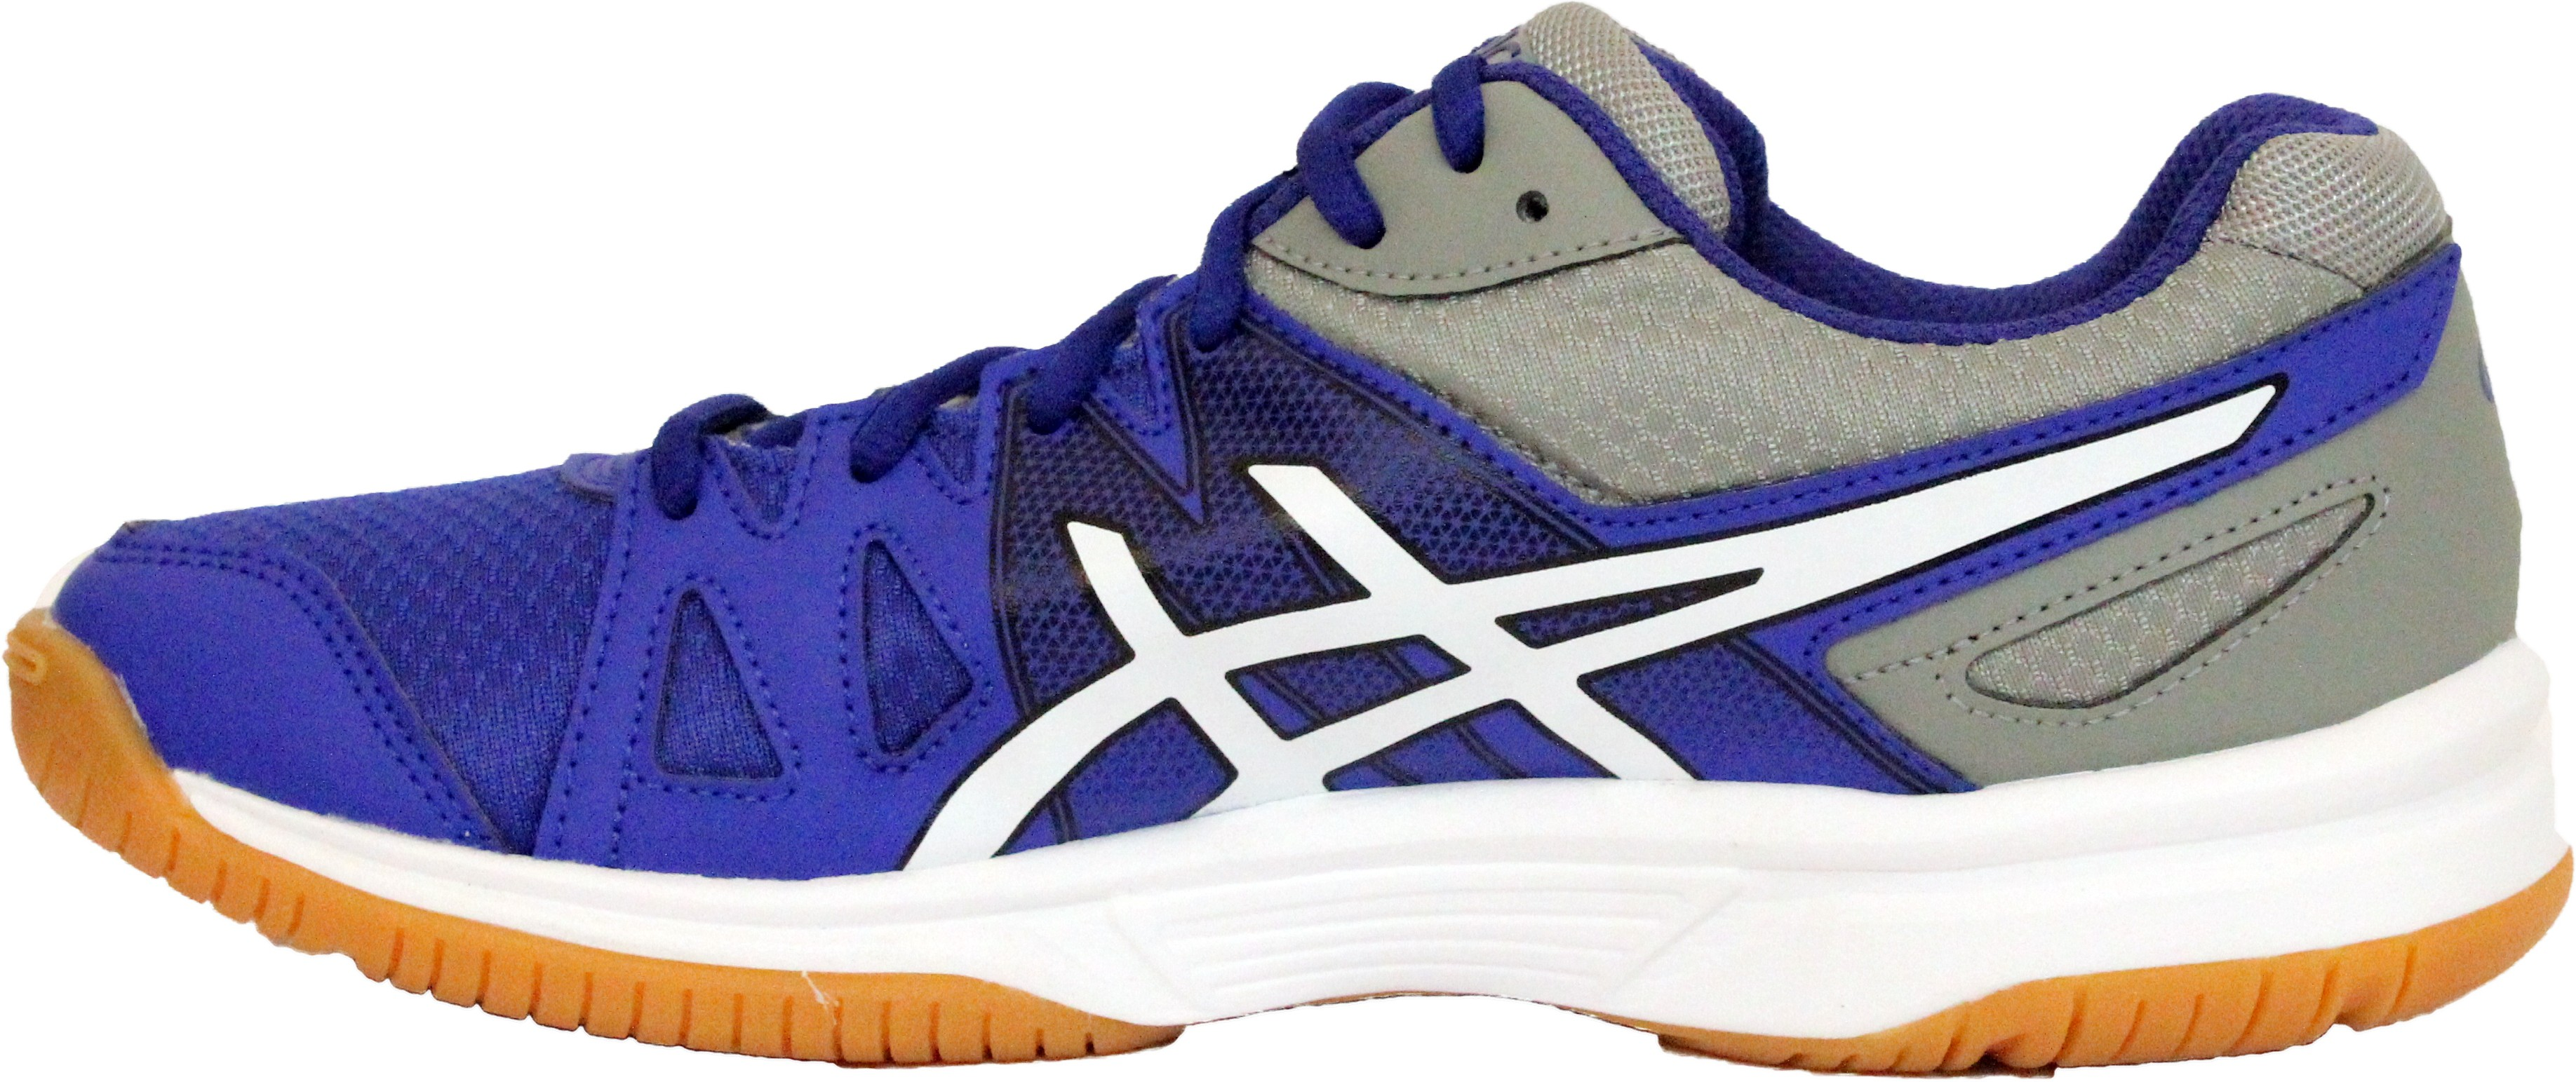 asics shoes price list in india 666200